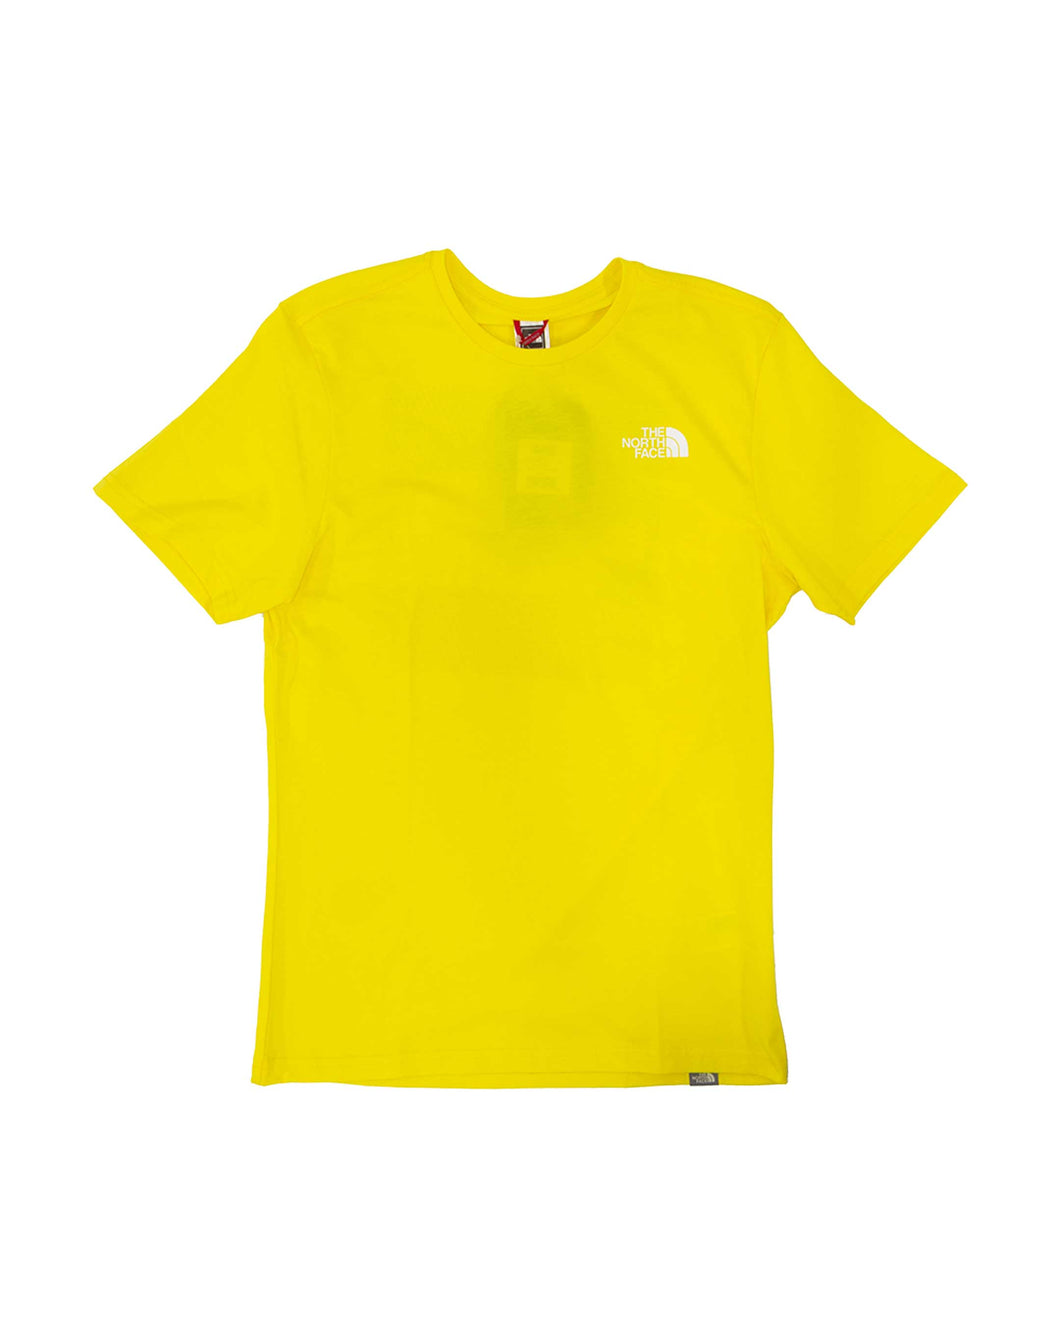 The North Face T-Shirt Ss Rnbw Lemon/White